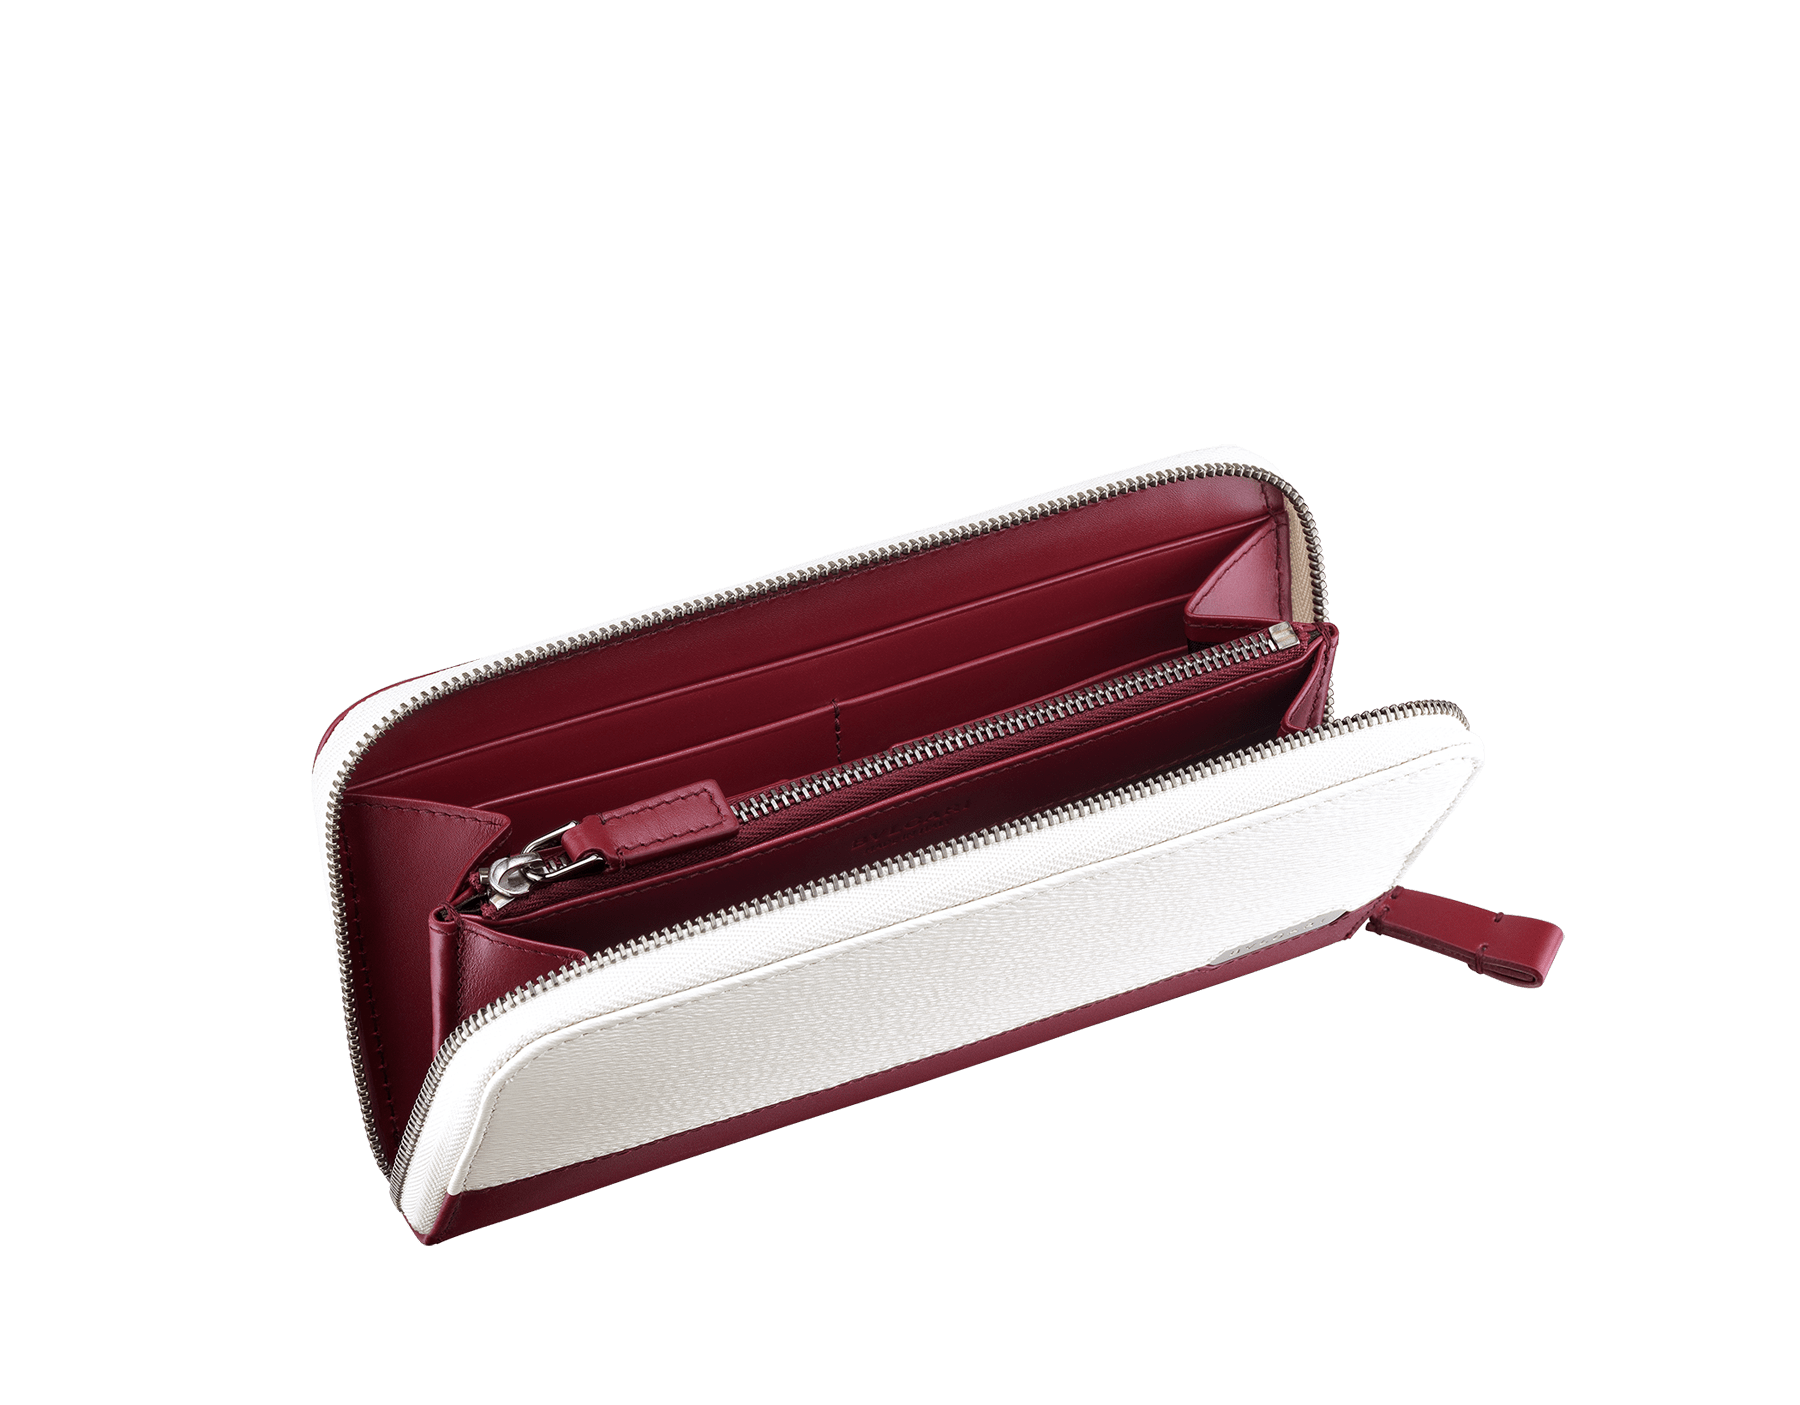 Serpenti Scaglie men's zipped wallet in white agate grazed calf leather and roman garnet calf leather. Bvlgari logo engraved on the hexagonal scaglie metal plate finished in dark ruthenium. 288344 image 2